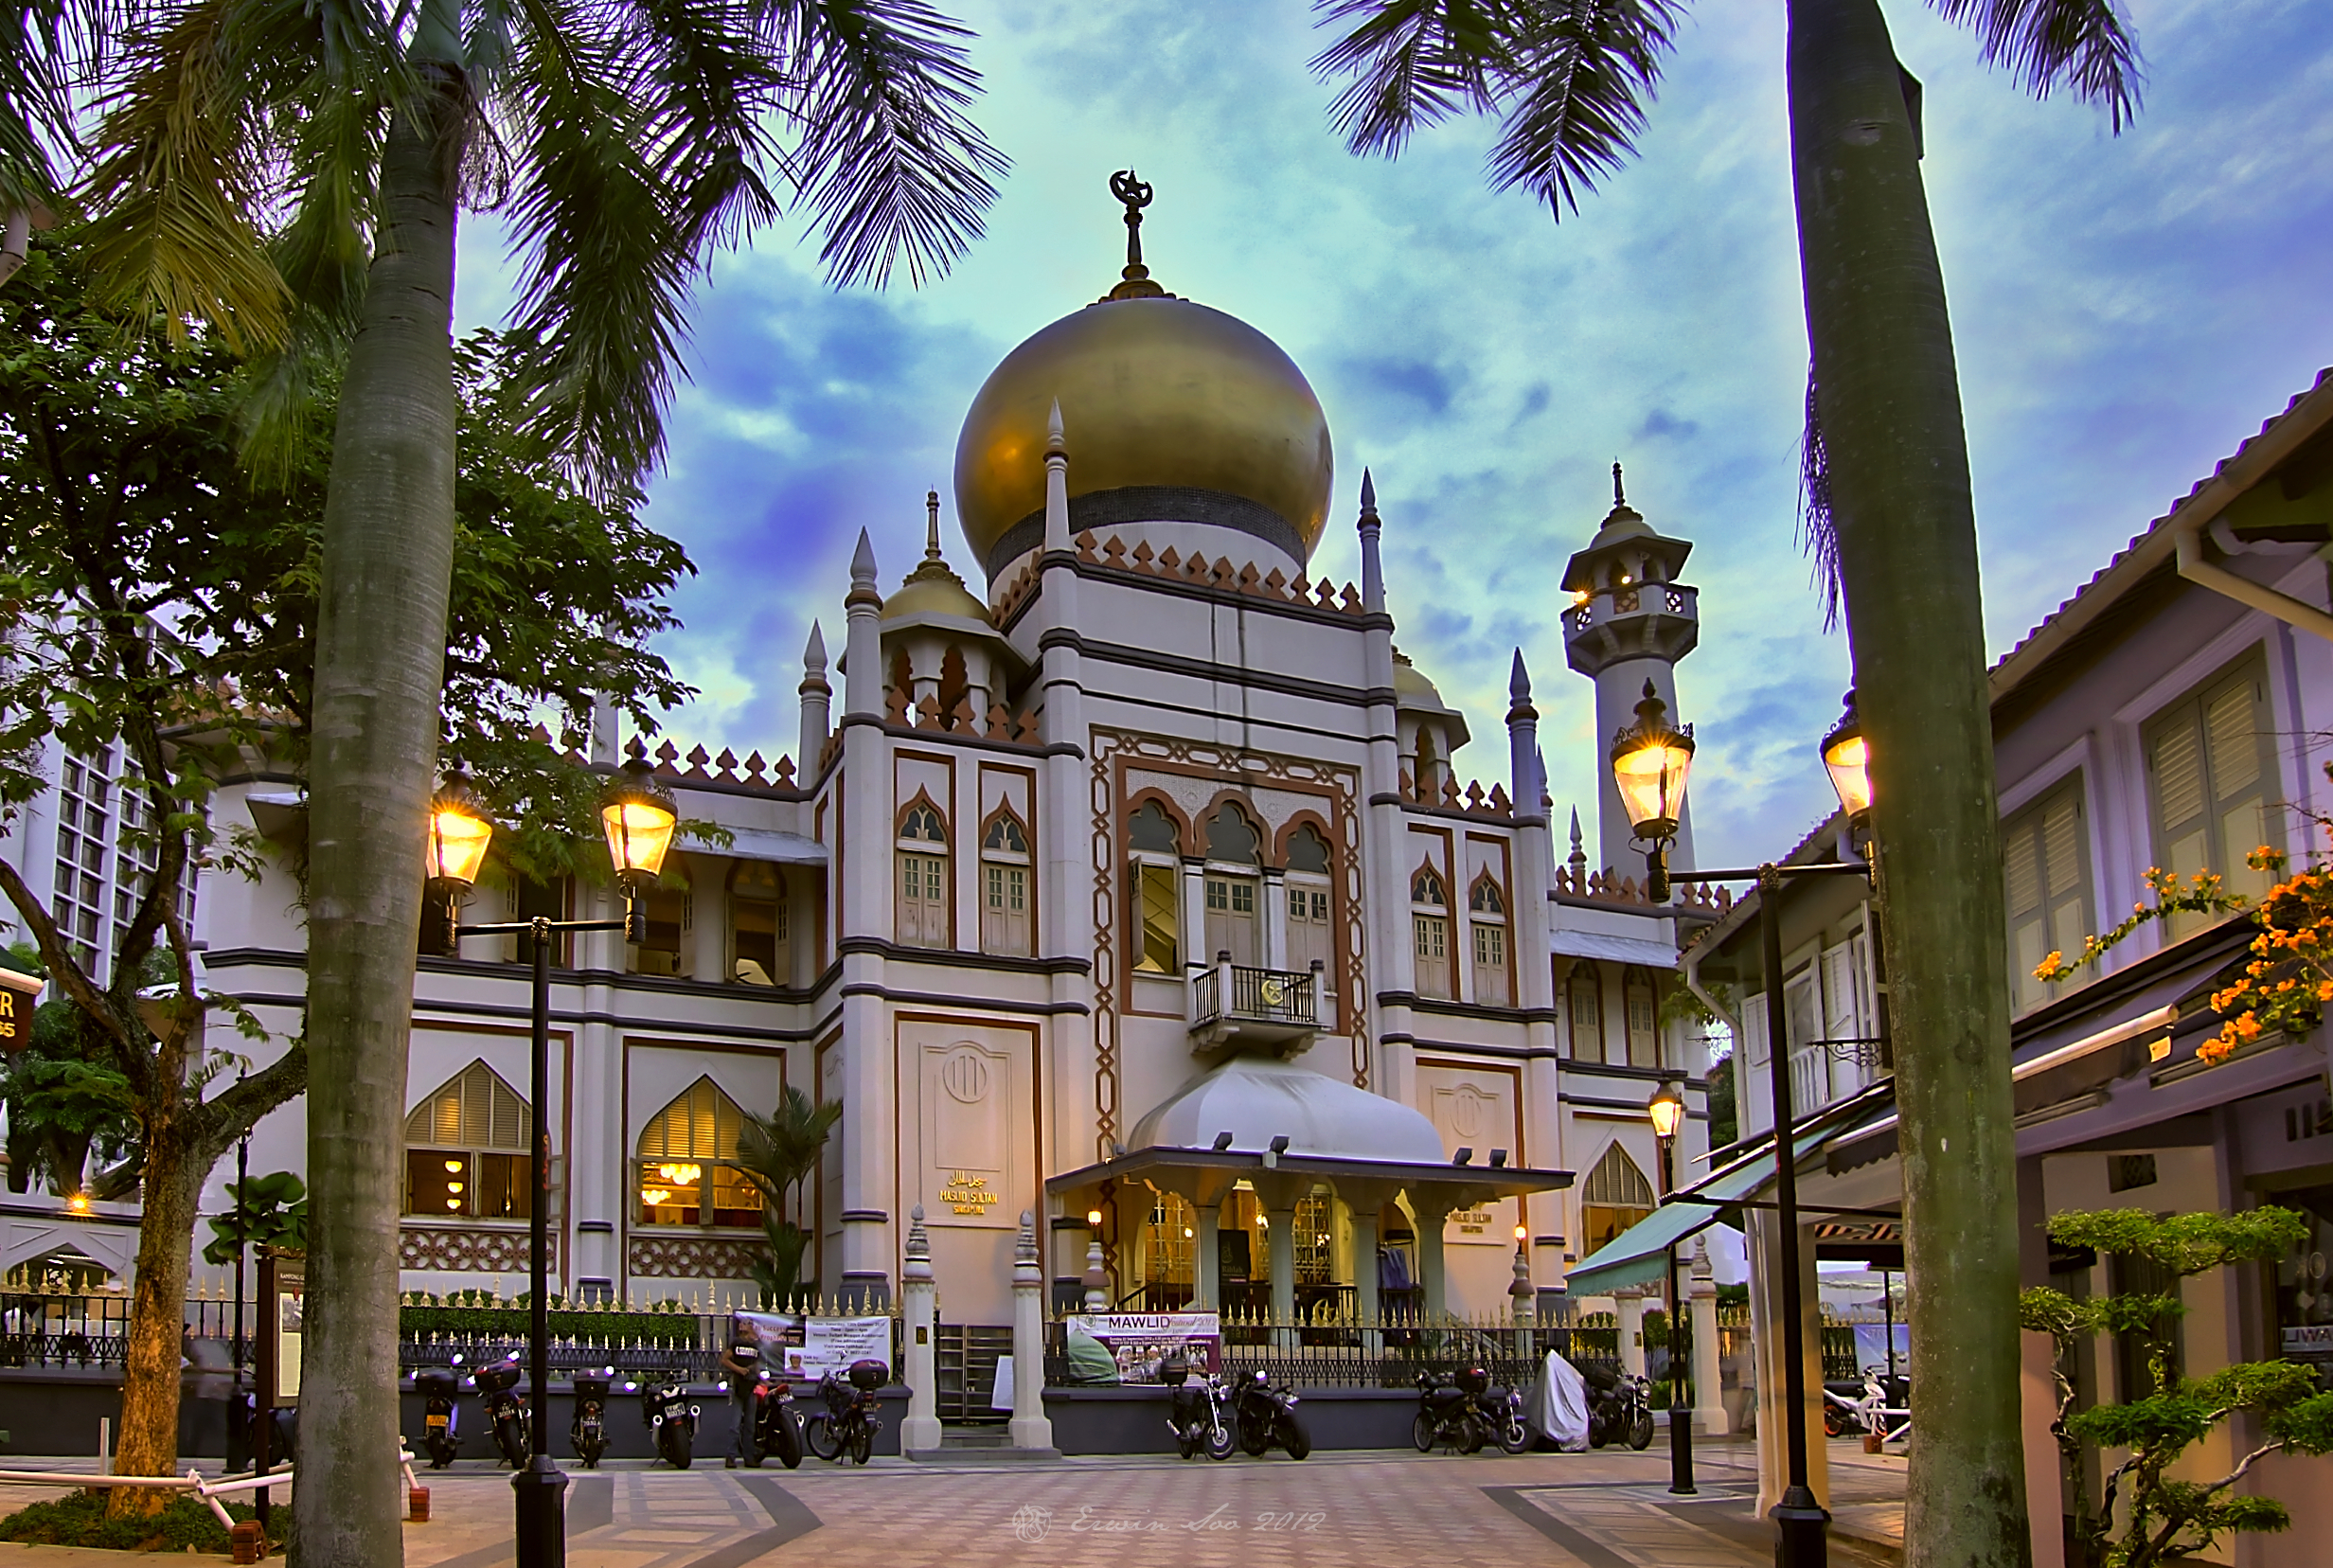 fullerton muslim Looking for suitable never married muslim grooms in fullerton muslim matrimonial nikahcom, the most trusted muslim matrimony website has suitable muslim matches for every single muslim.